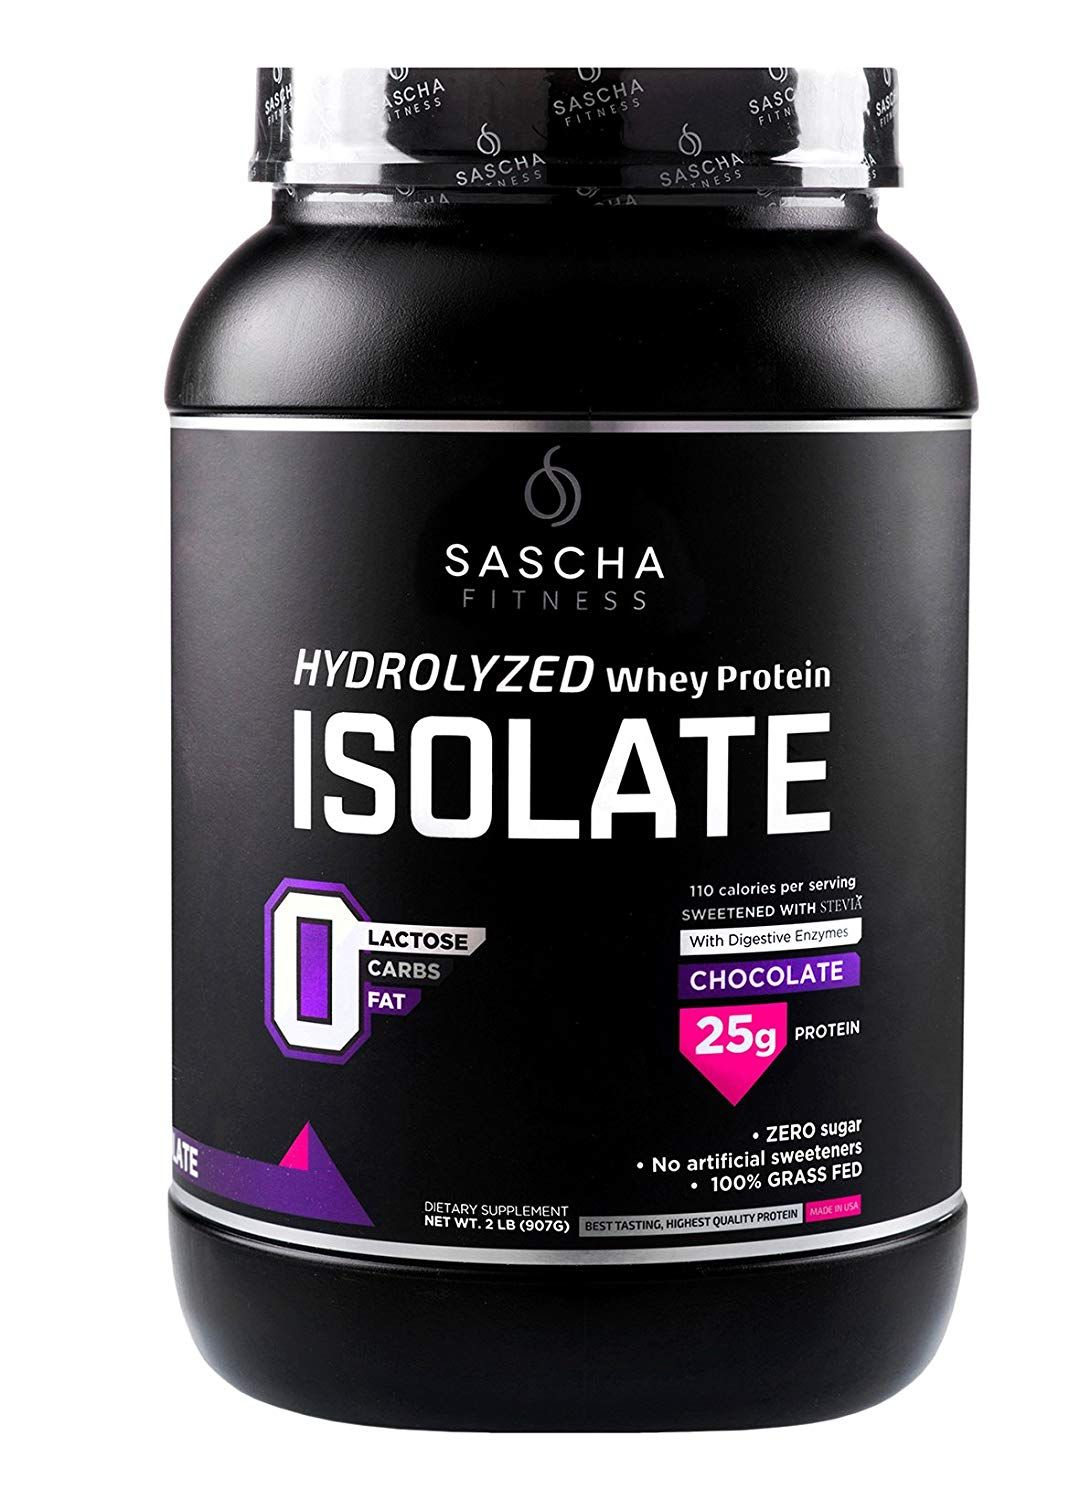 Sascha Fitness Hydrolyzed Whey Protein Isolate 100 Grass Fed 2 Pound Chocolate Isolate Protein Workout Protein Whey Protein Isolate